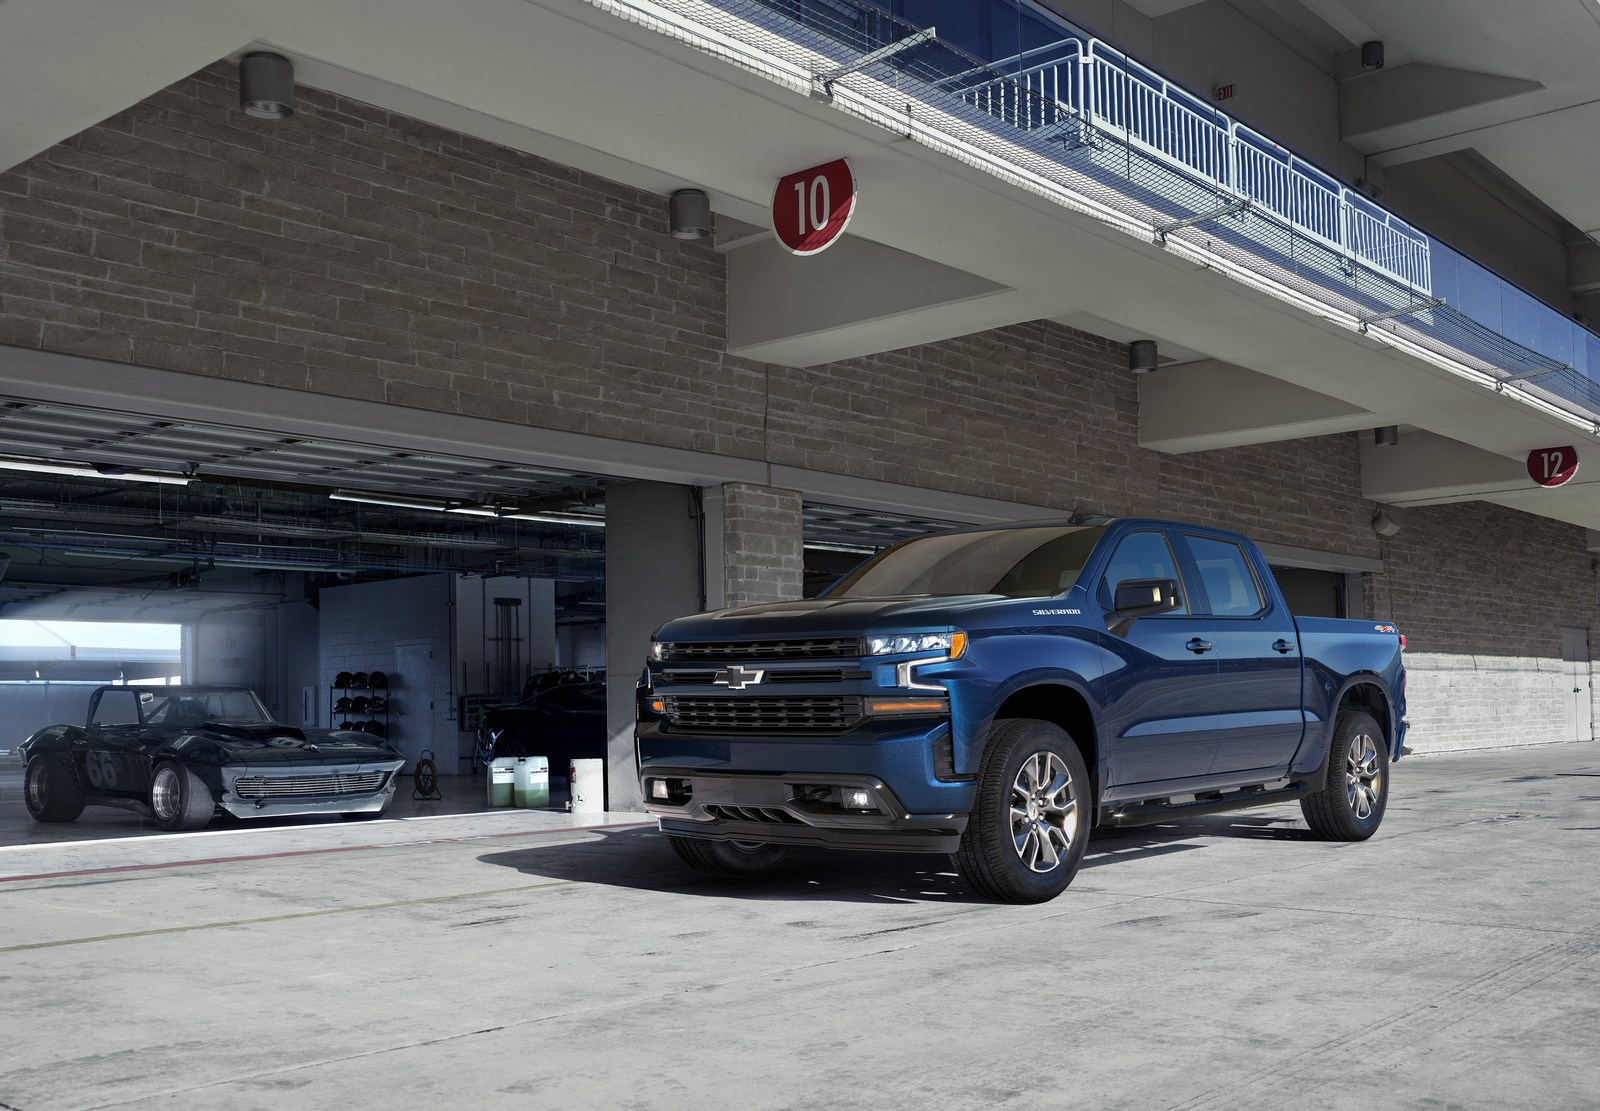 The all-new 2019 Silverado RST (new trim for 2019) brings a street-performance appearance to the LT, with body-color trim, full LED lighting (foglamps, headlamps and taillamps) and up to 22-inch wheels with all-season tires.